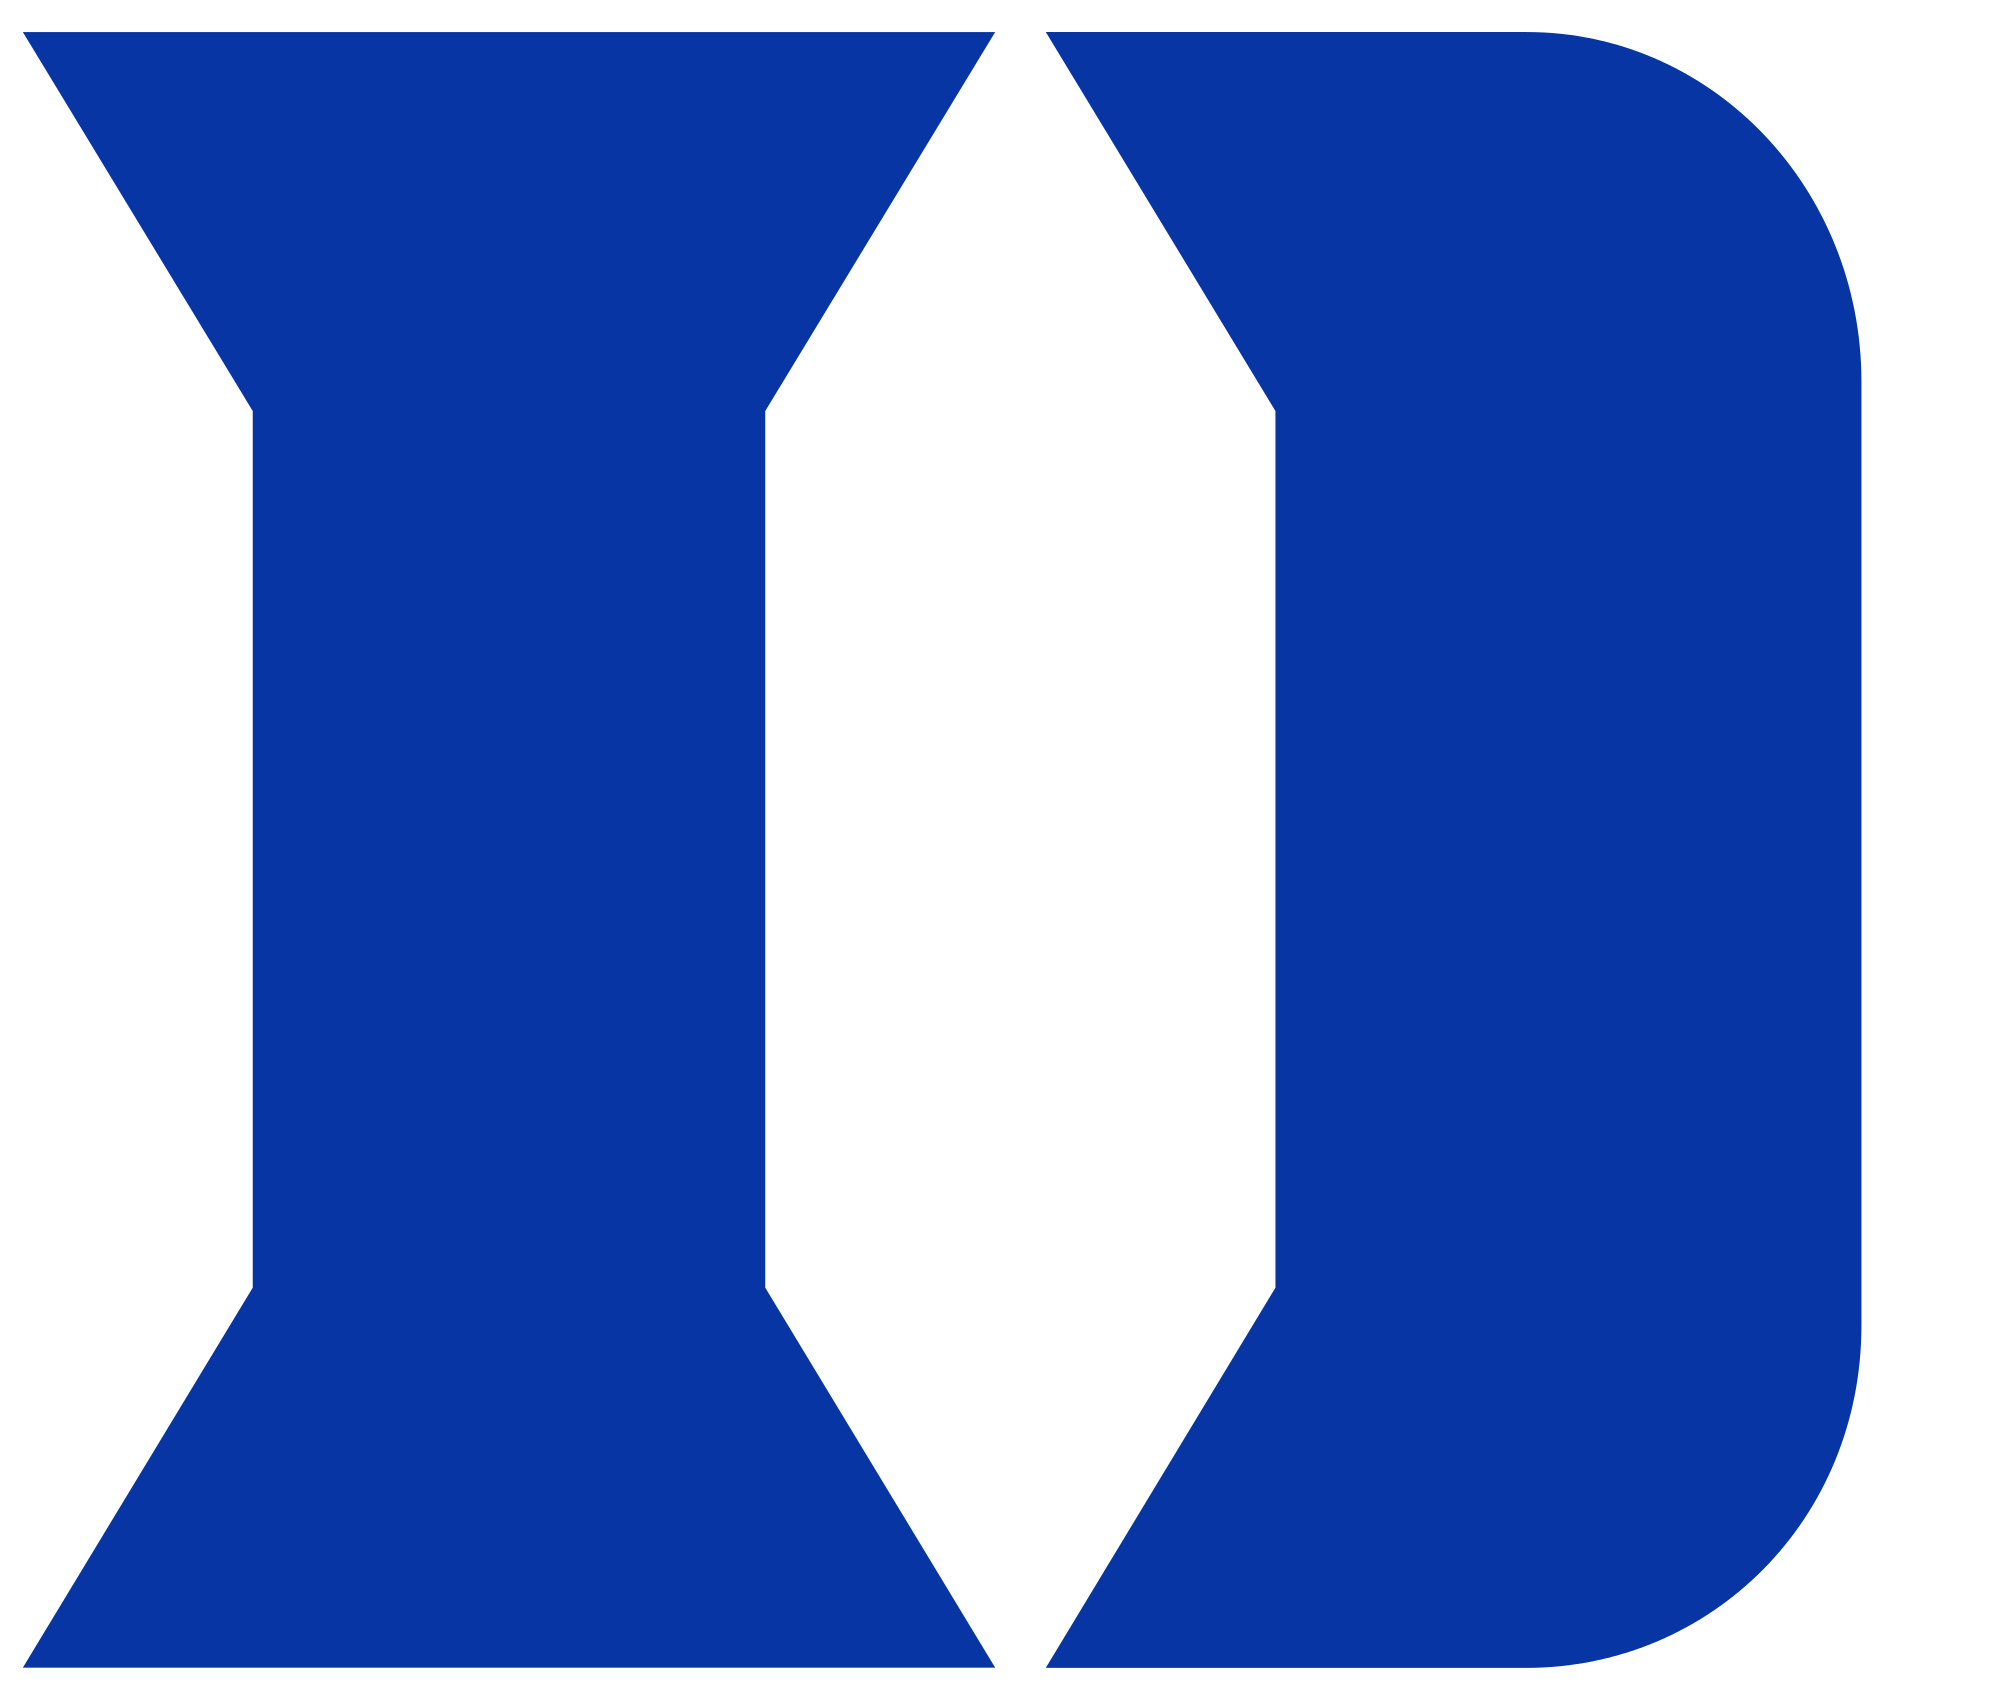 Duke Basketball Clipart at GetDrawings com | Free for